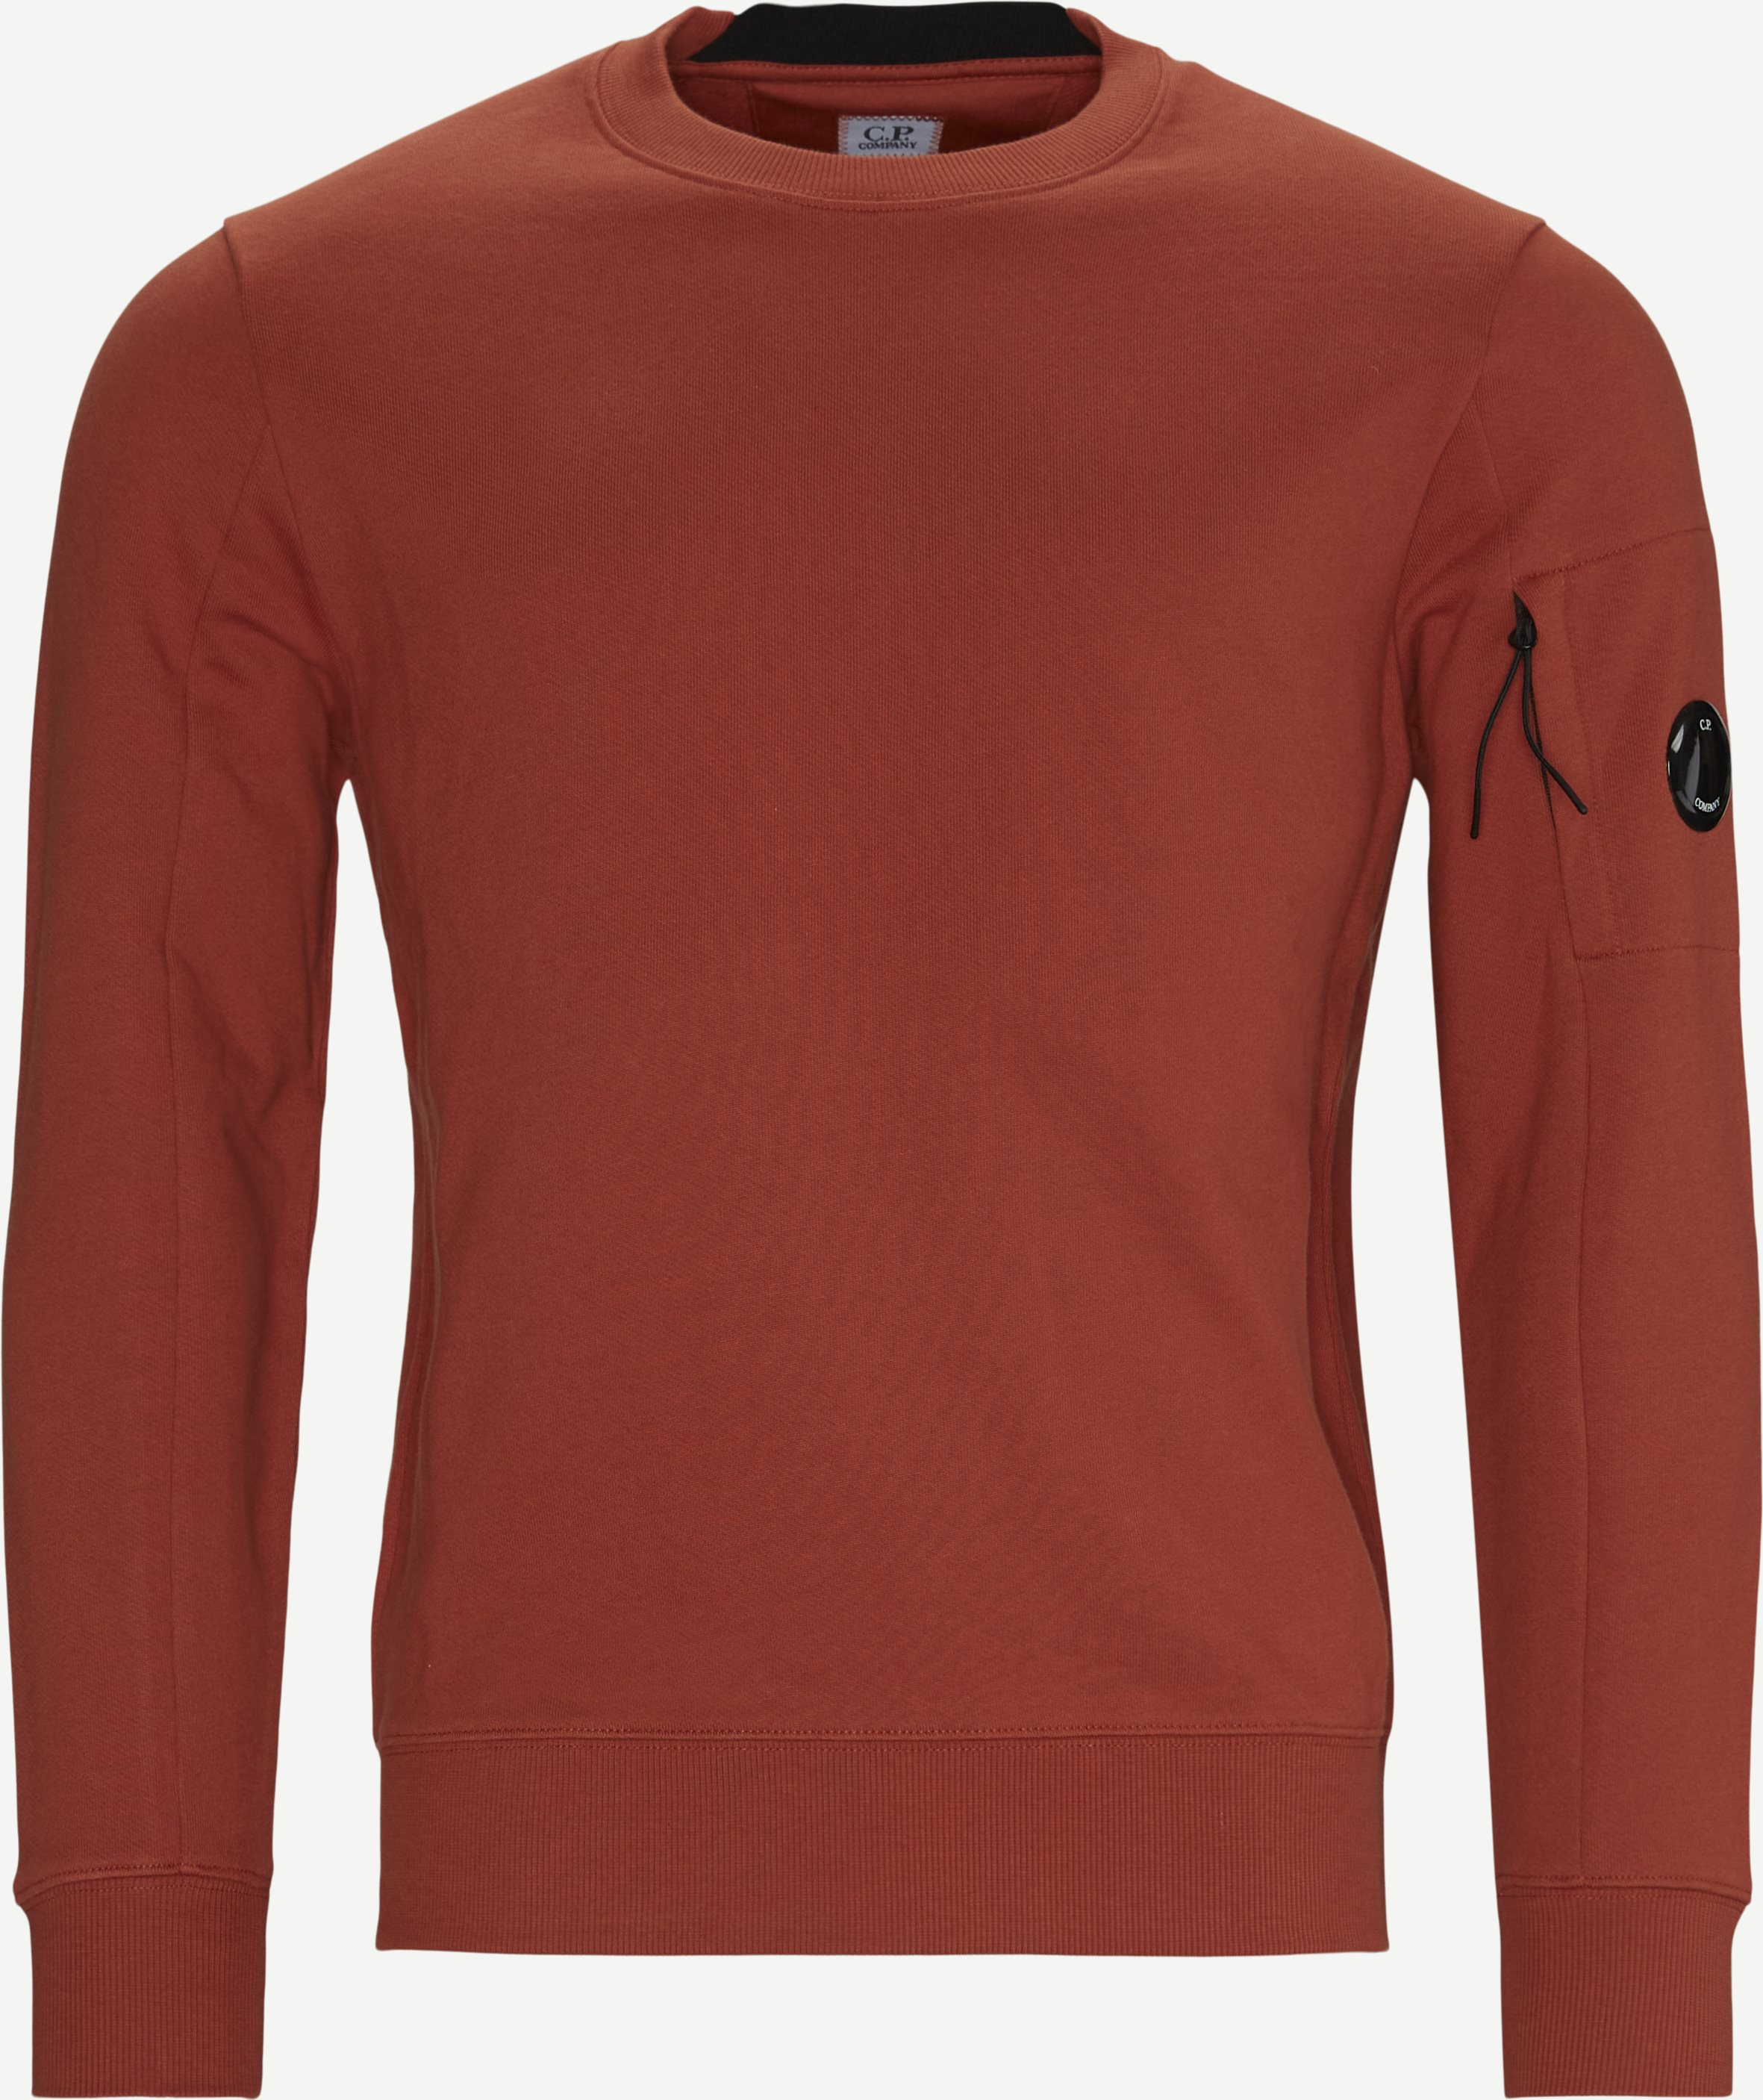 Garment Dyed Light Fleece Lens Crew Sweat - Sweatshirts - Regular - Orange